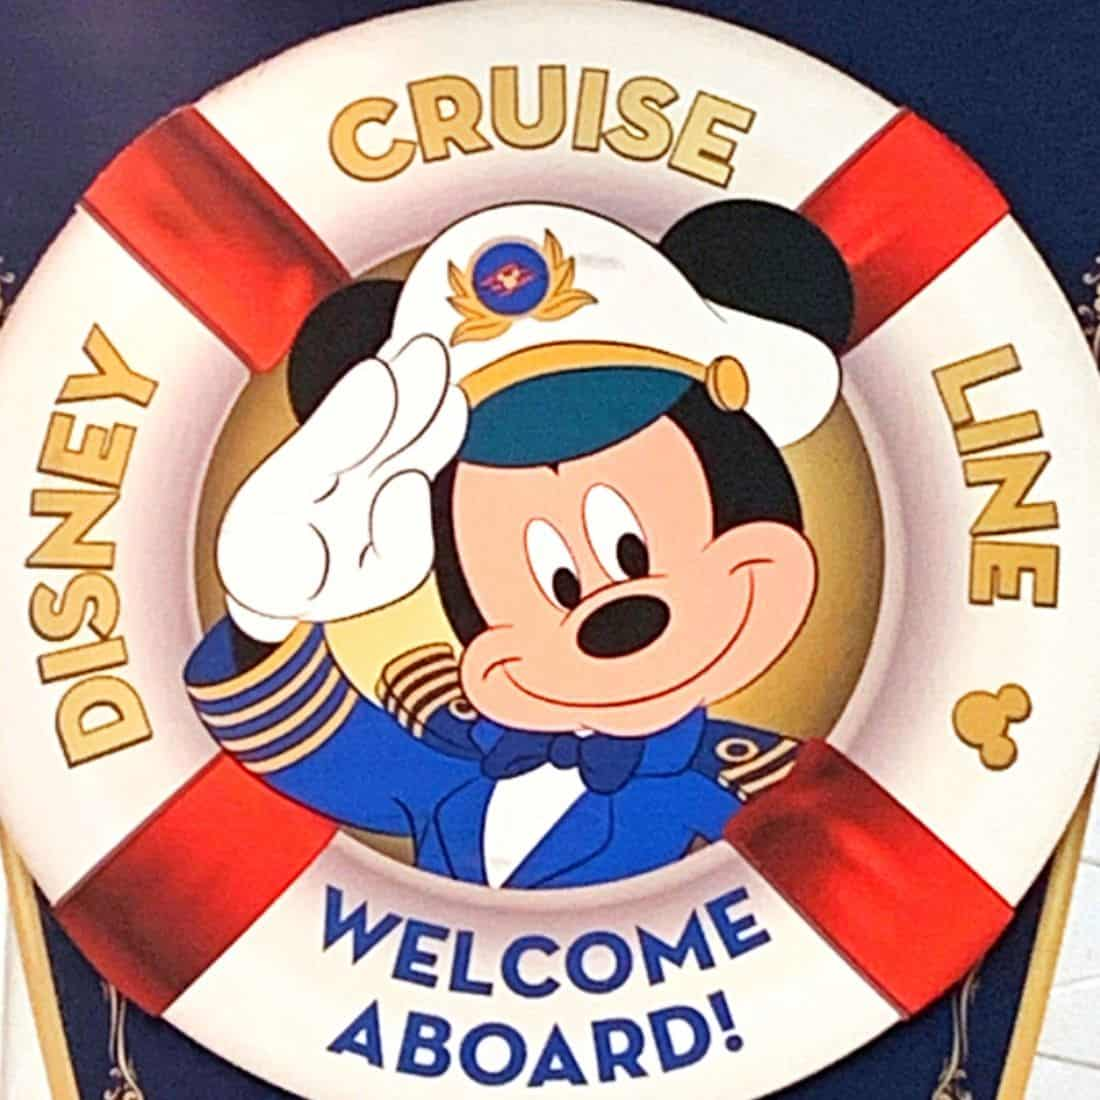 Mickey mouse in captain's hat in the center of a white life preserver with red stripes with text Disney Cruise Line Welcome Aboard